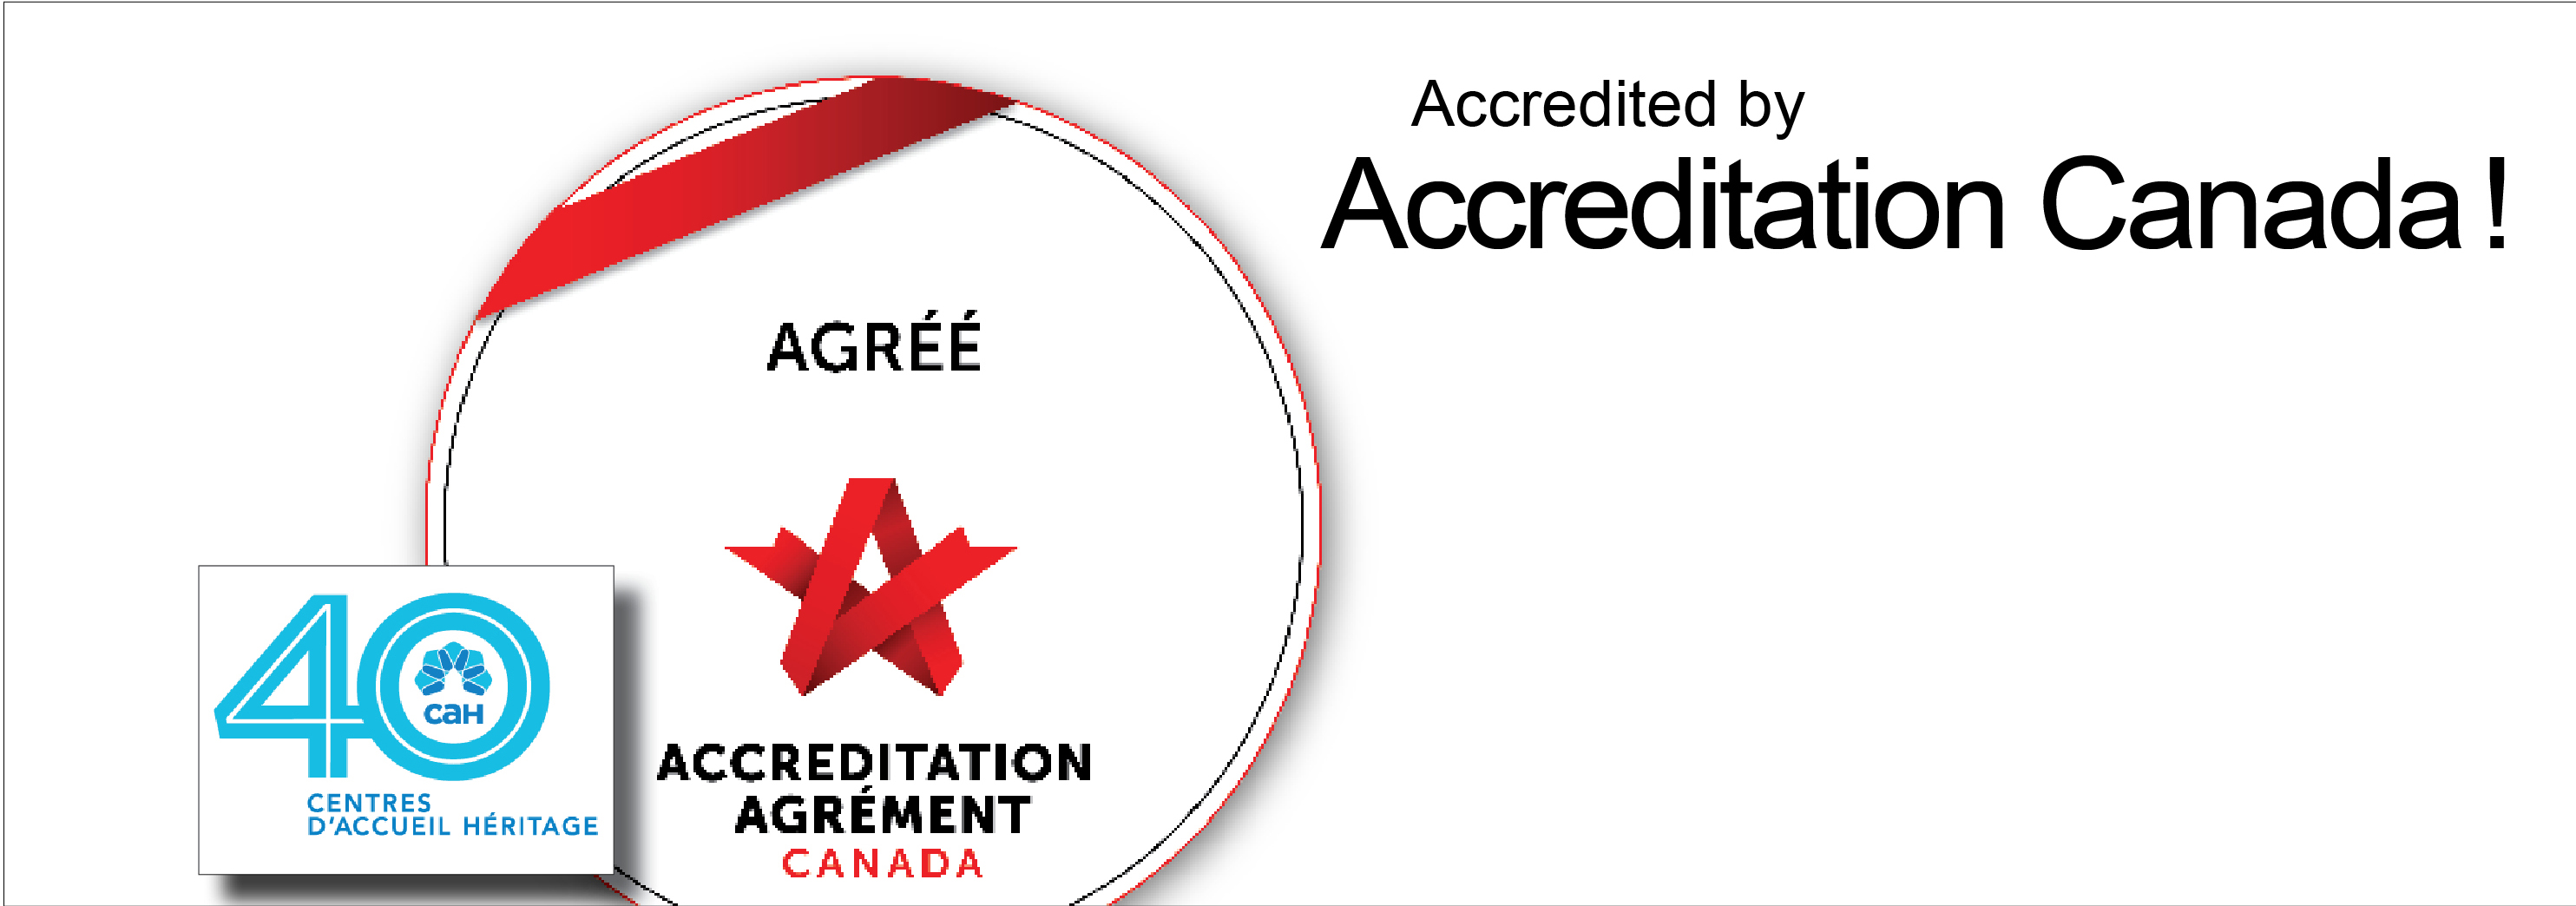 cah-accredited-by-accreditation-canada